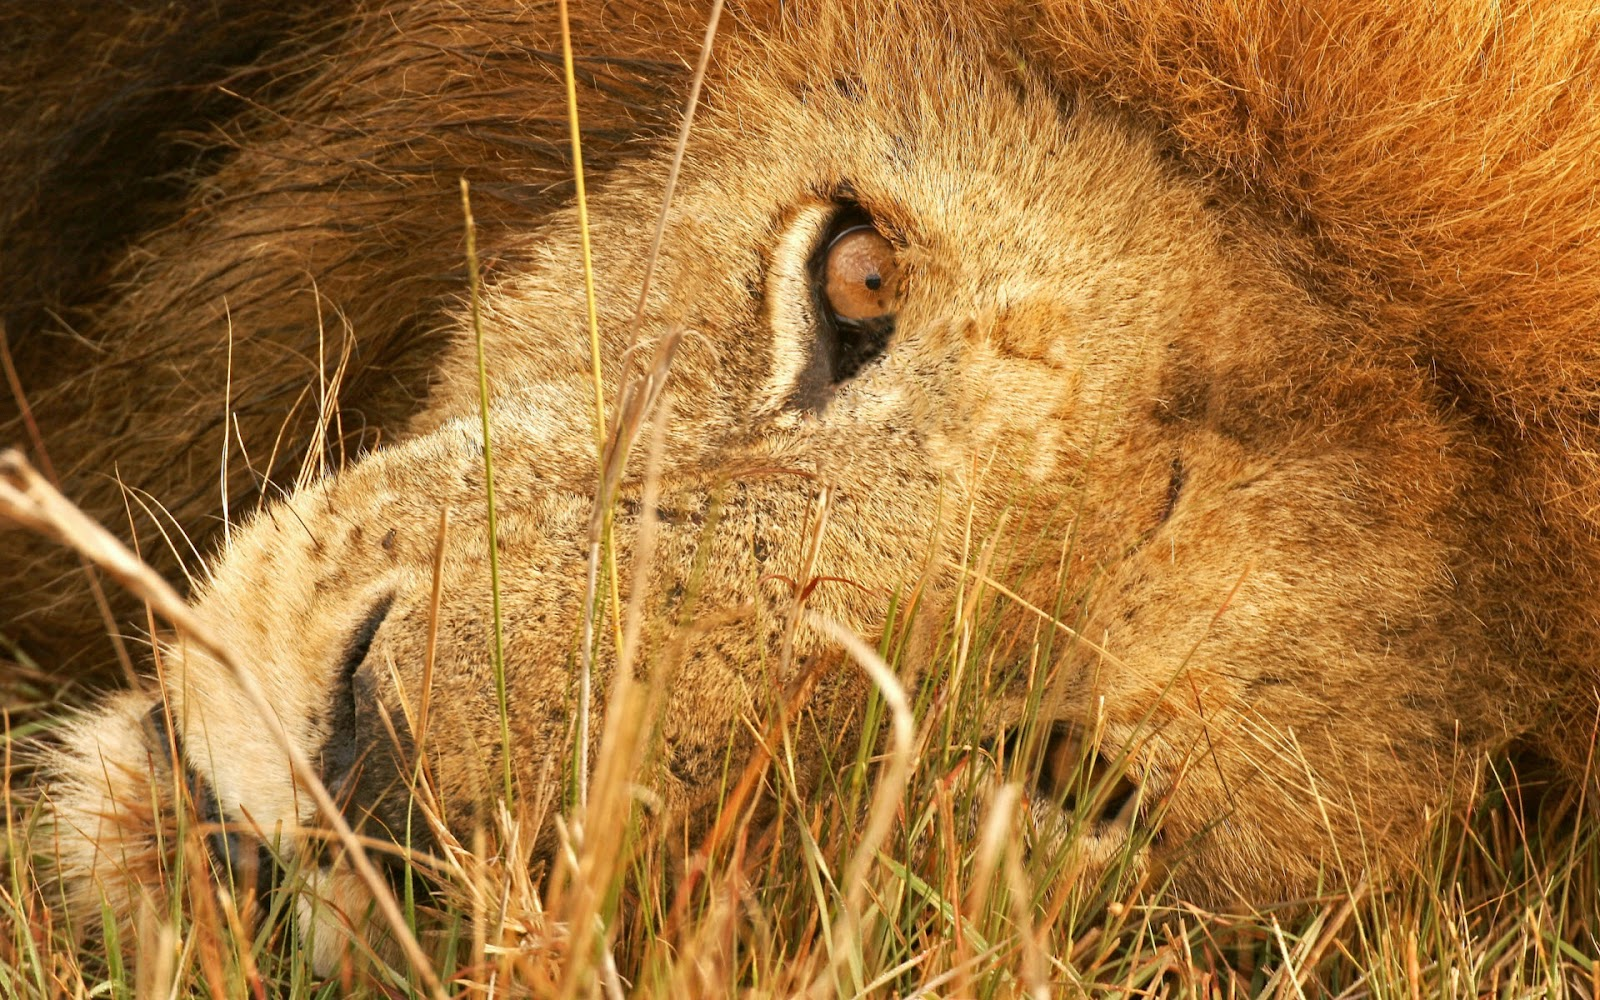 Lion Hd Wallpapers: HD Lion Pictures Lions Wallpapers